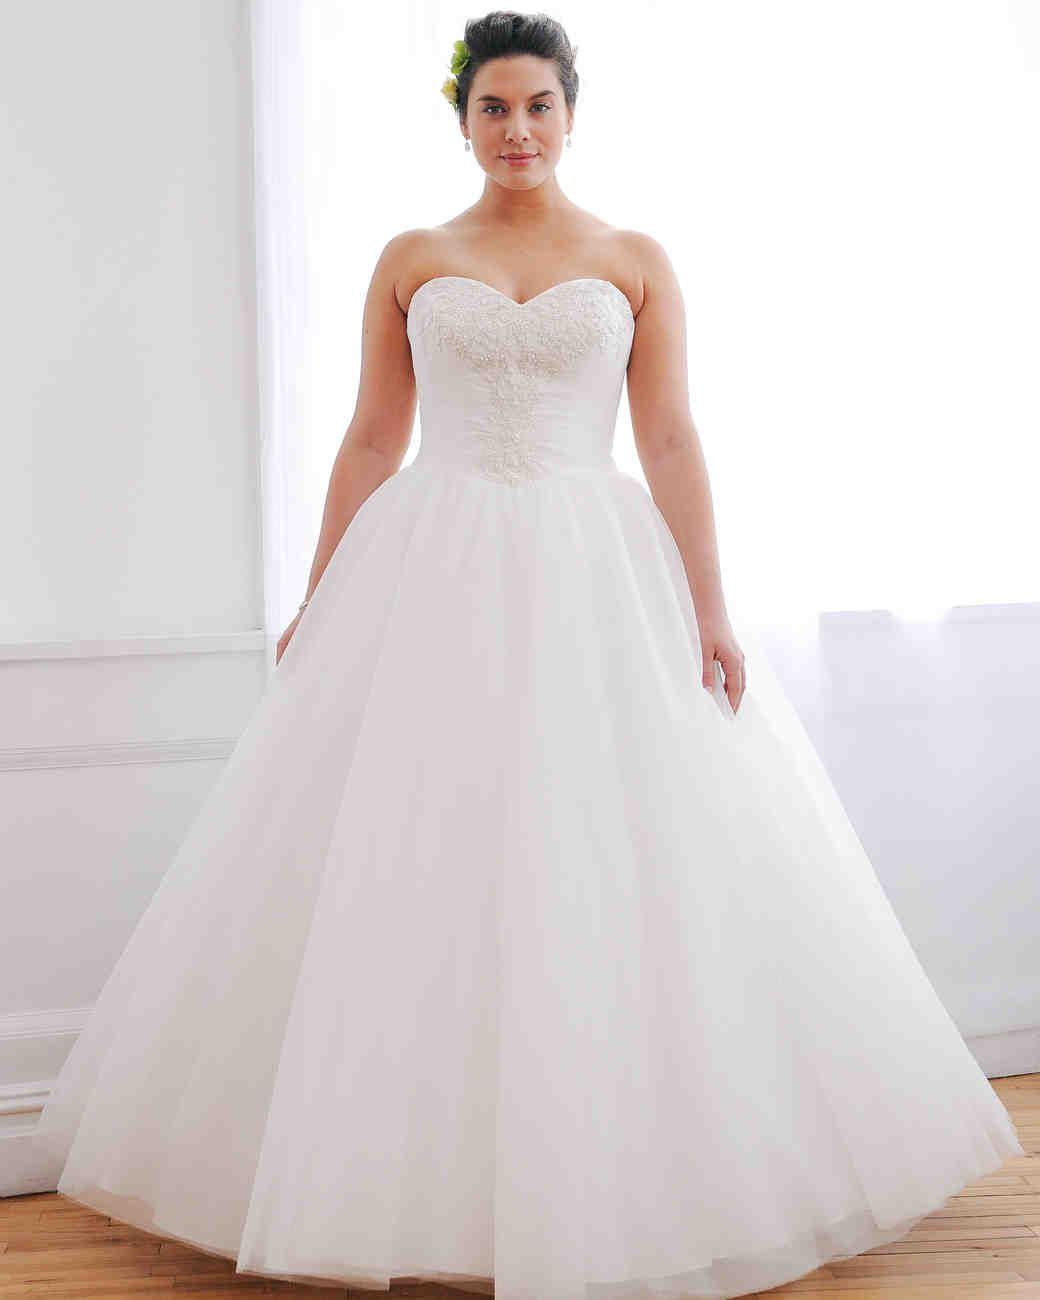 Mature bride wedding dresses   David Bridal Wedding Dress  Wedding Dresses for the Mature